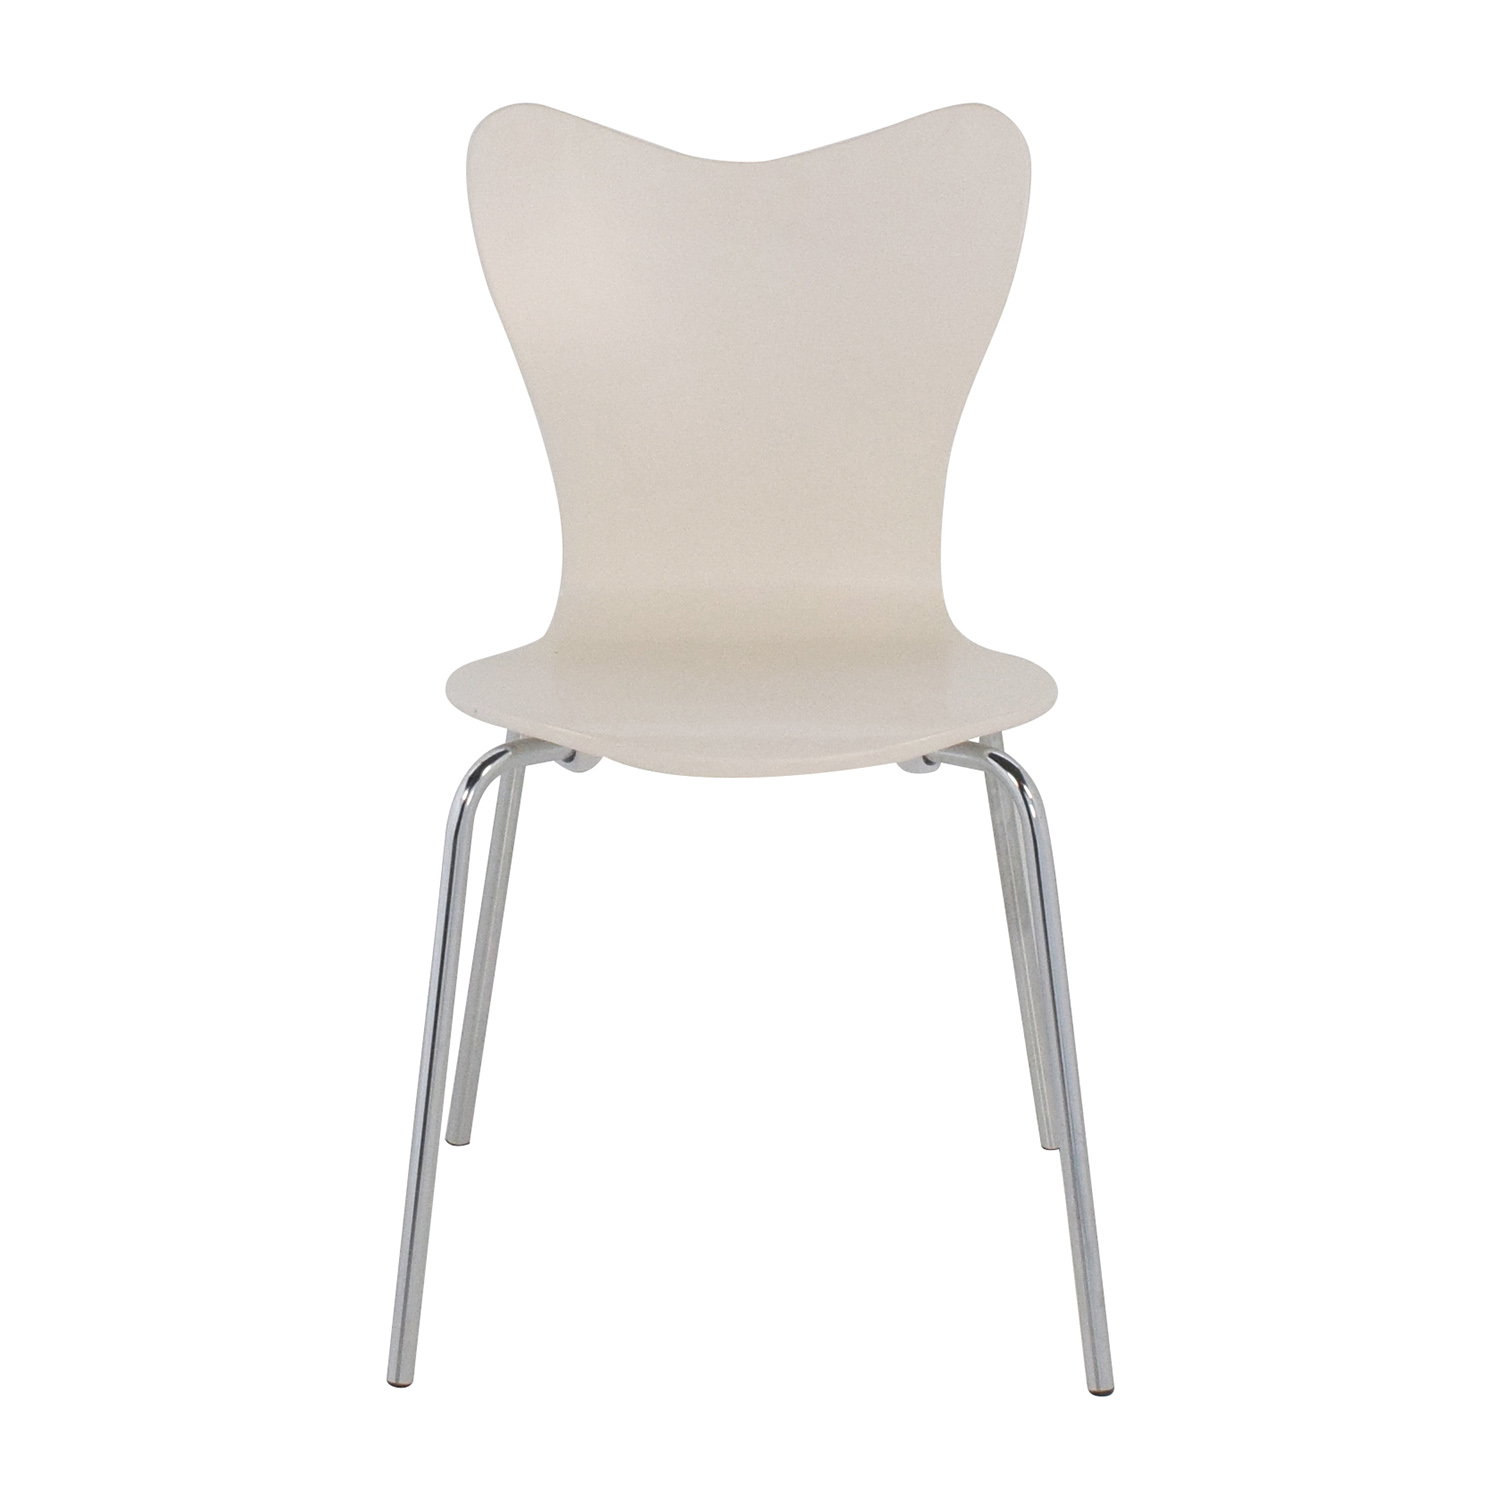 PBteen White Desk Chair / Chairs